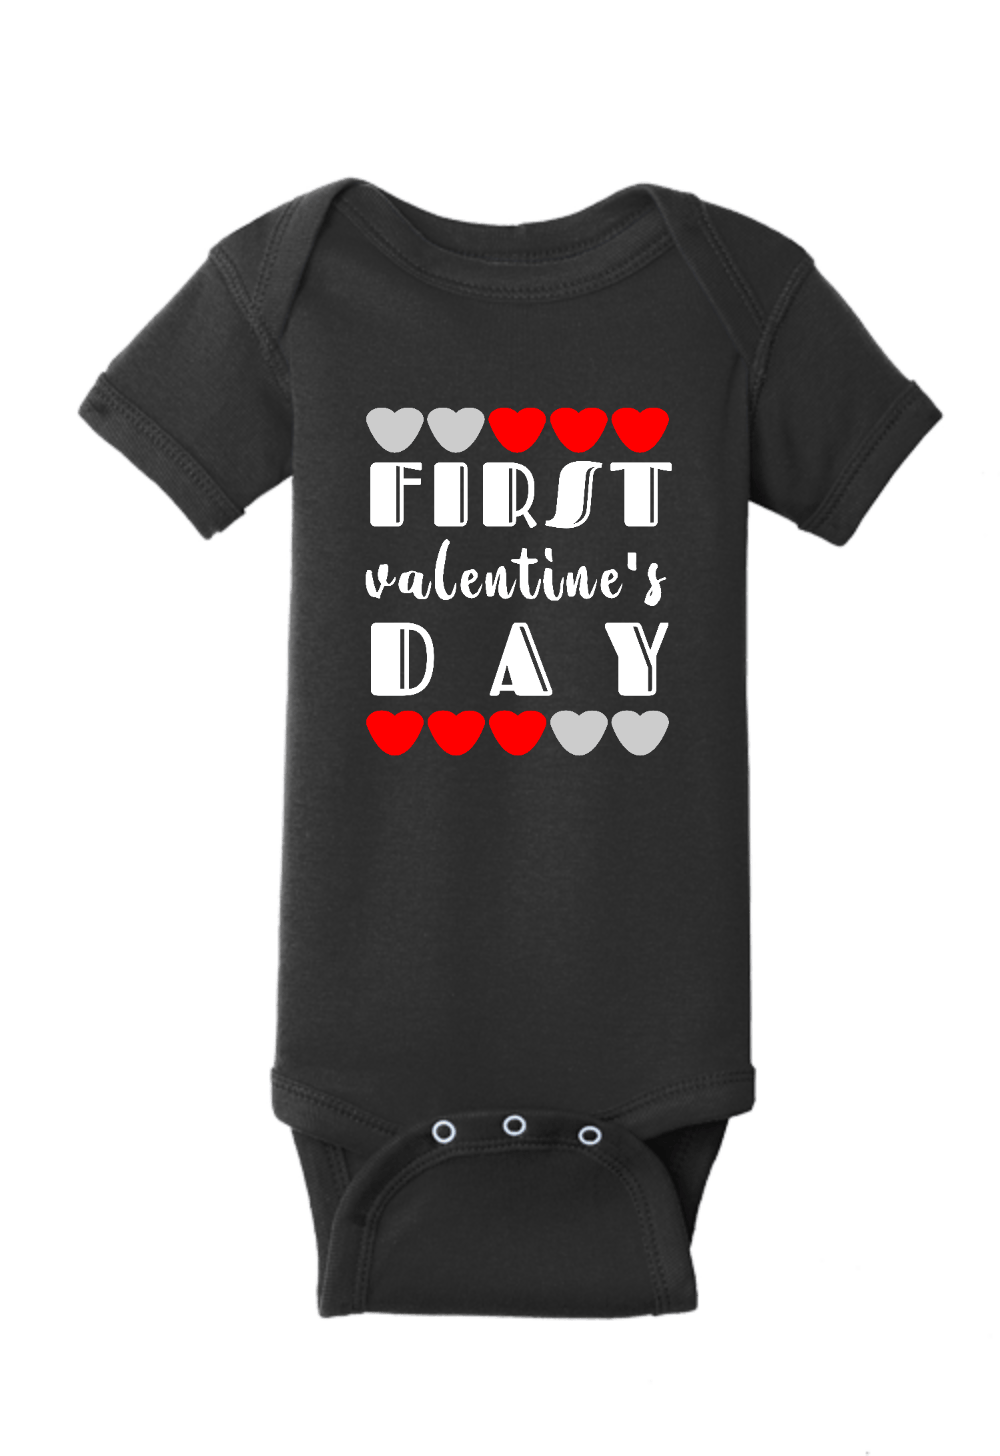 First Valentines Day Onesie